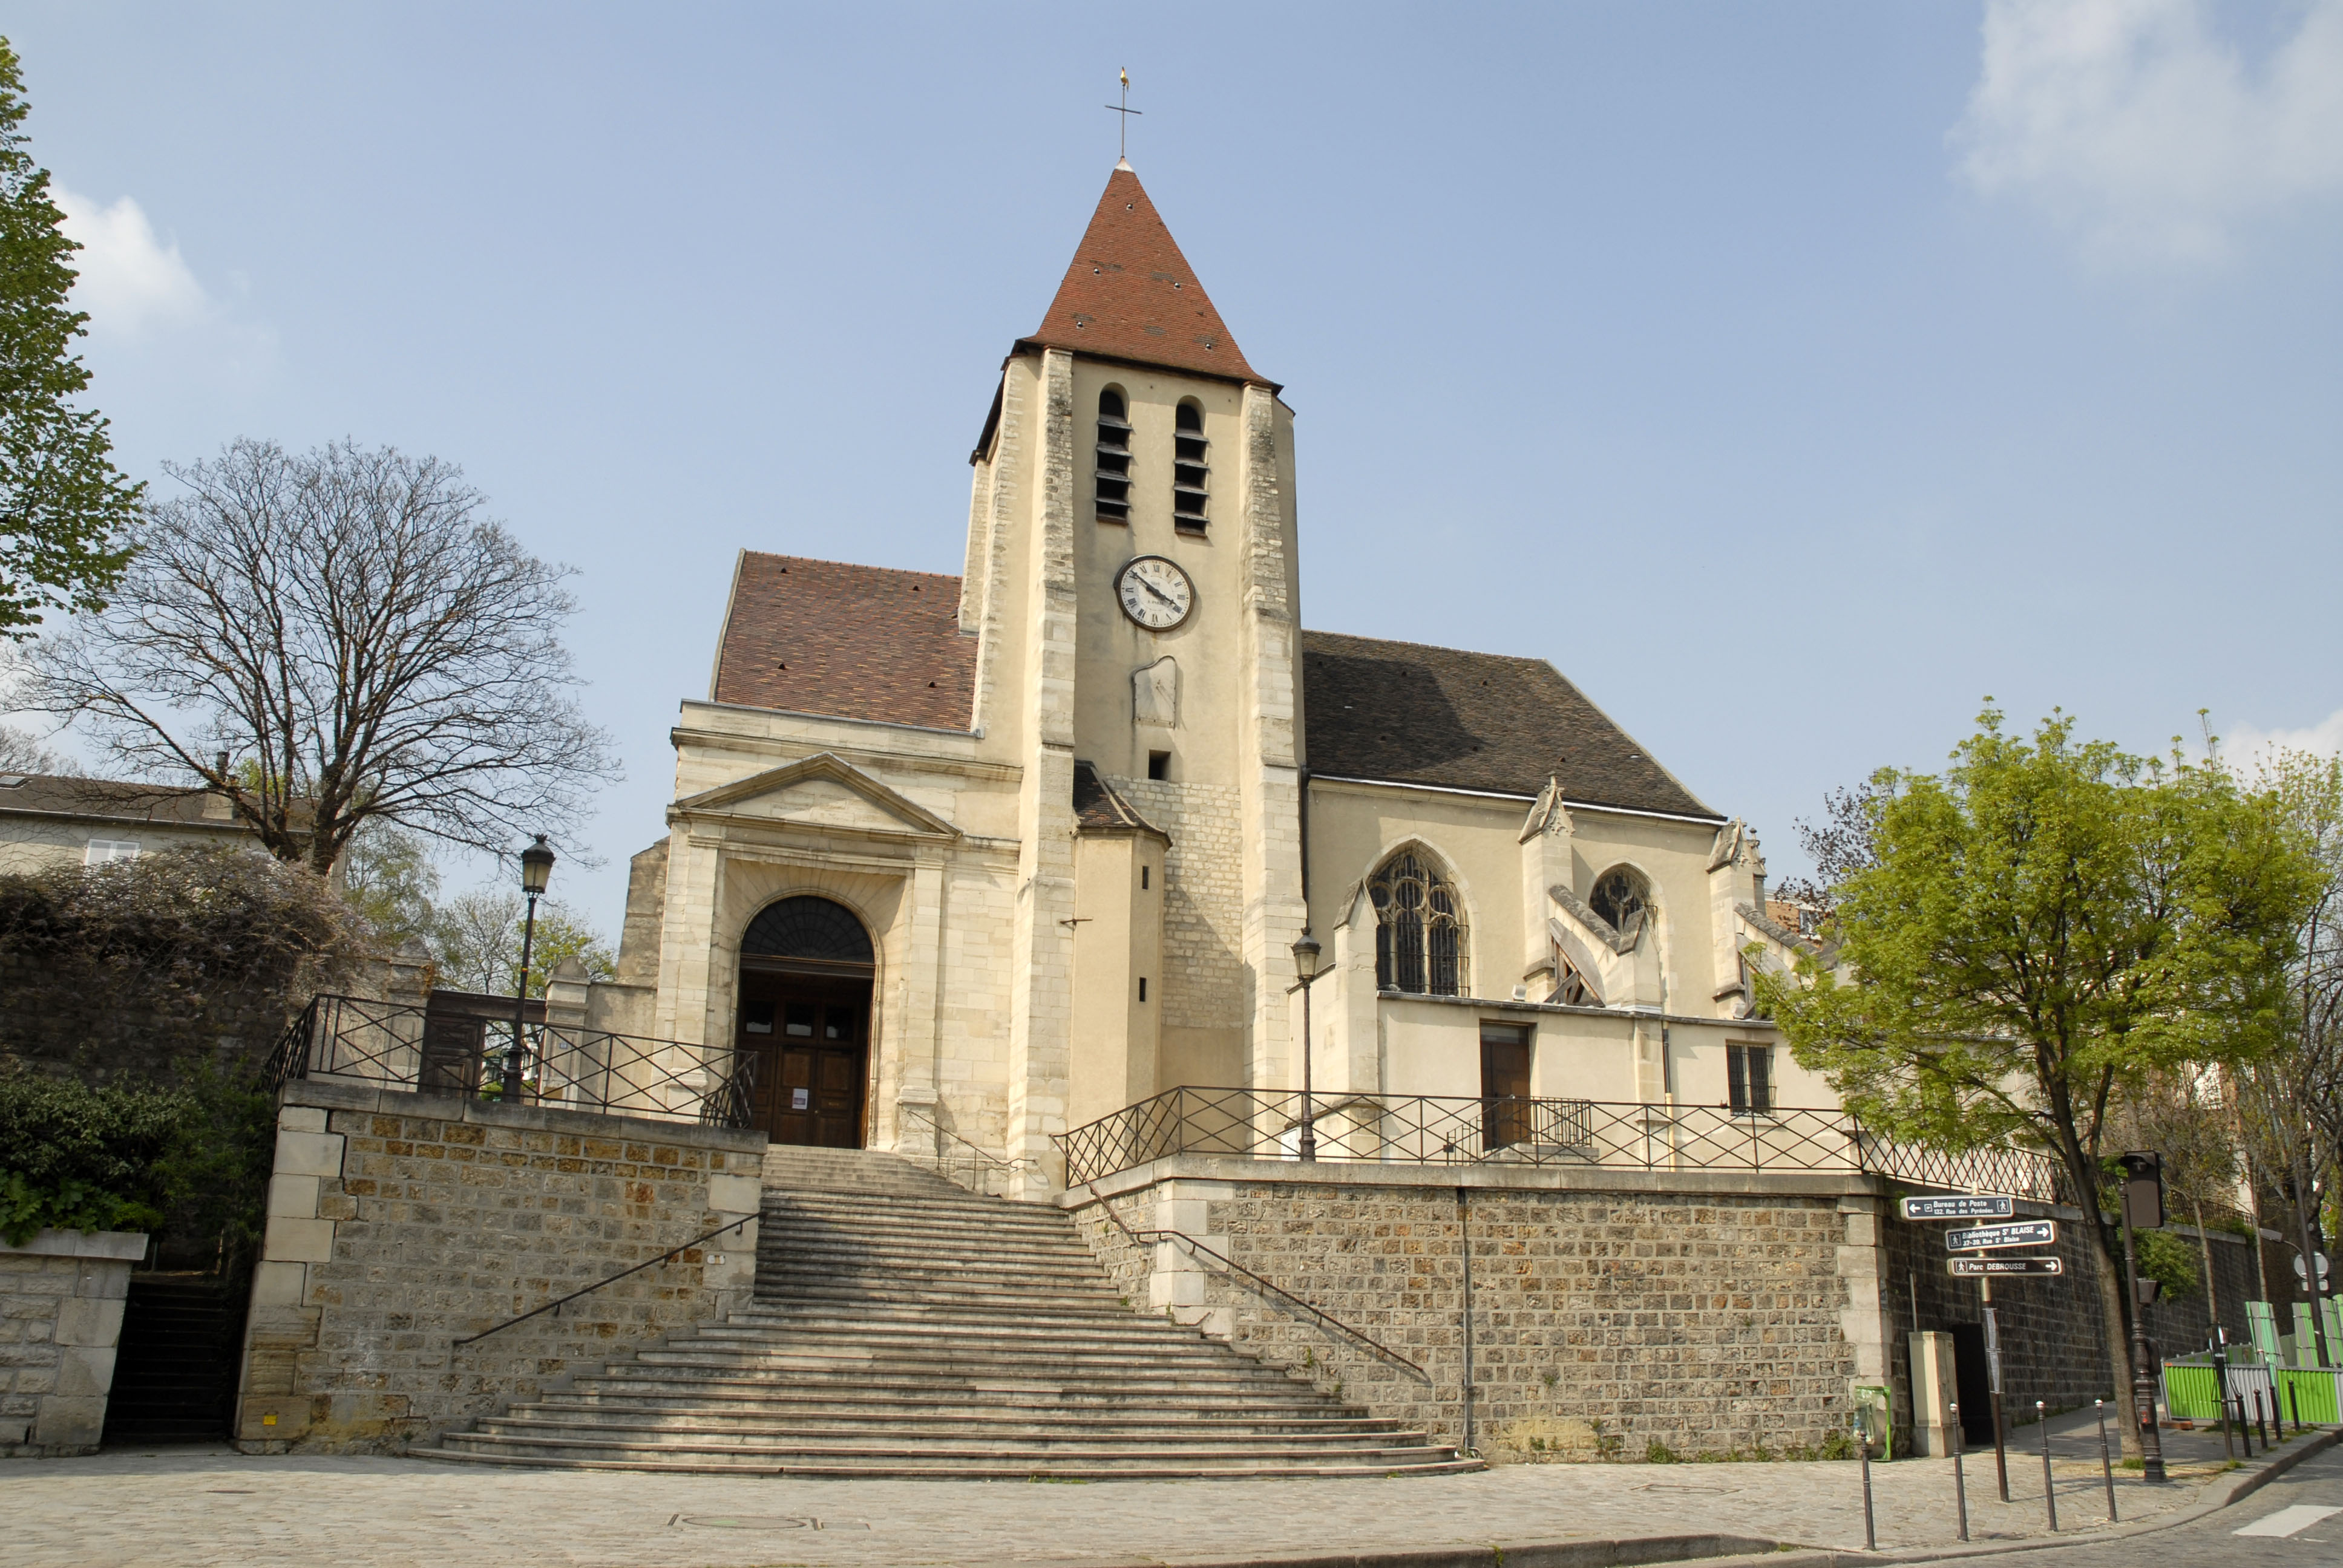 saint germain singles dating site Book your tickets online for abbaye de saint-germain d'auxerre, auxerre: see 152 reviews, articles the part of the crypt dating to vi century.